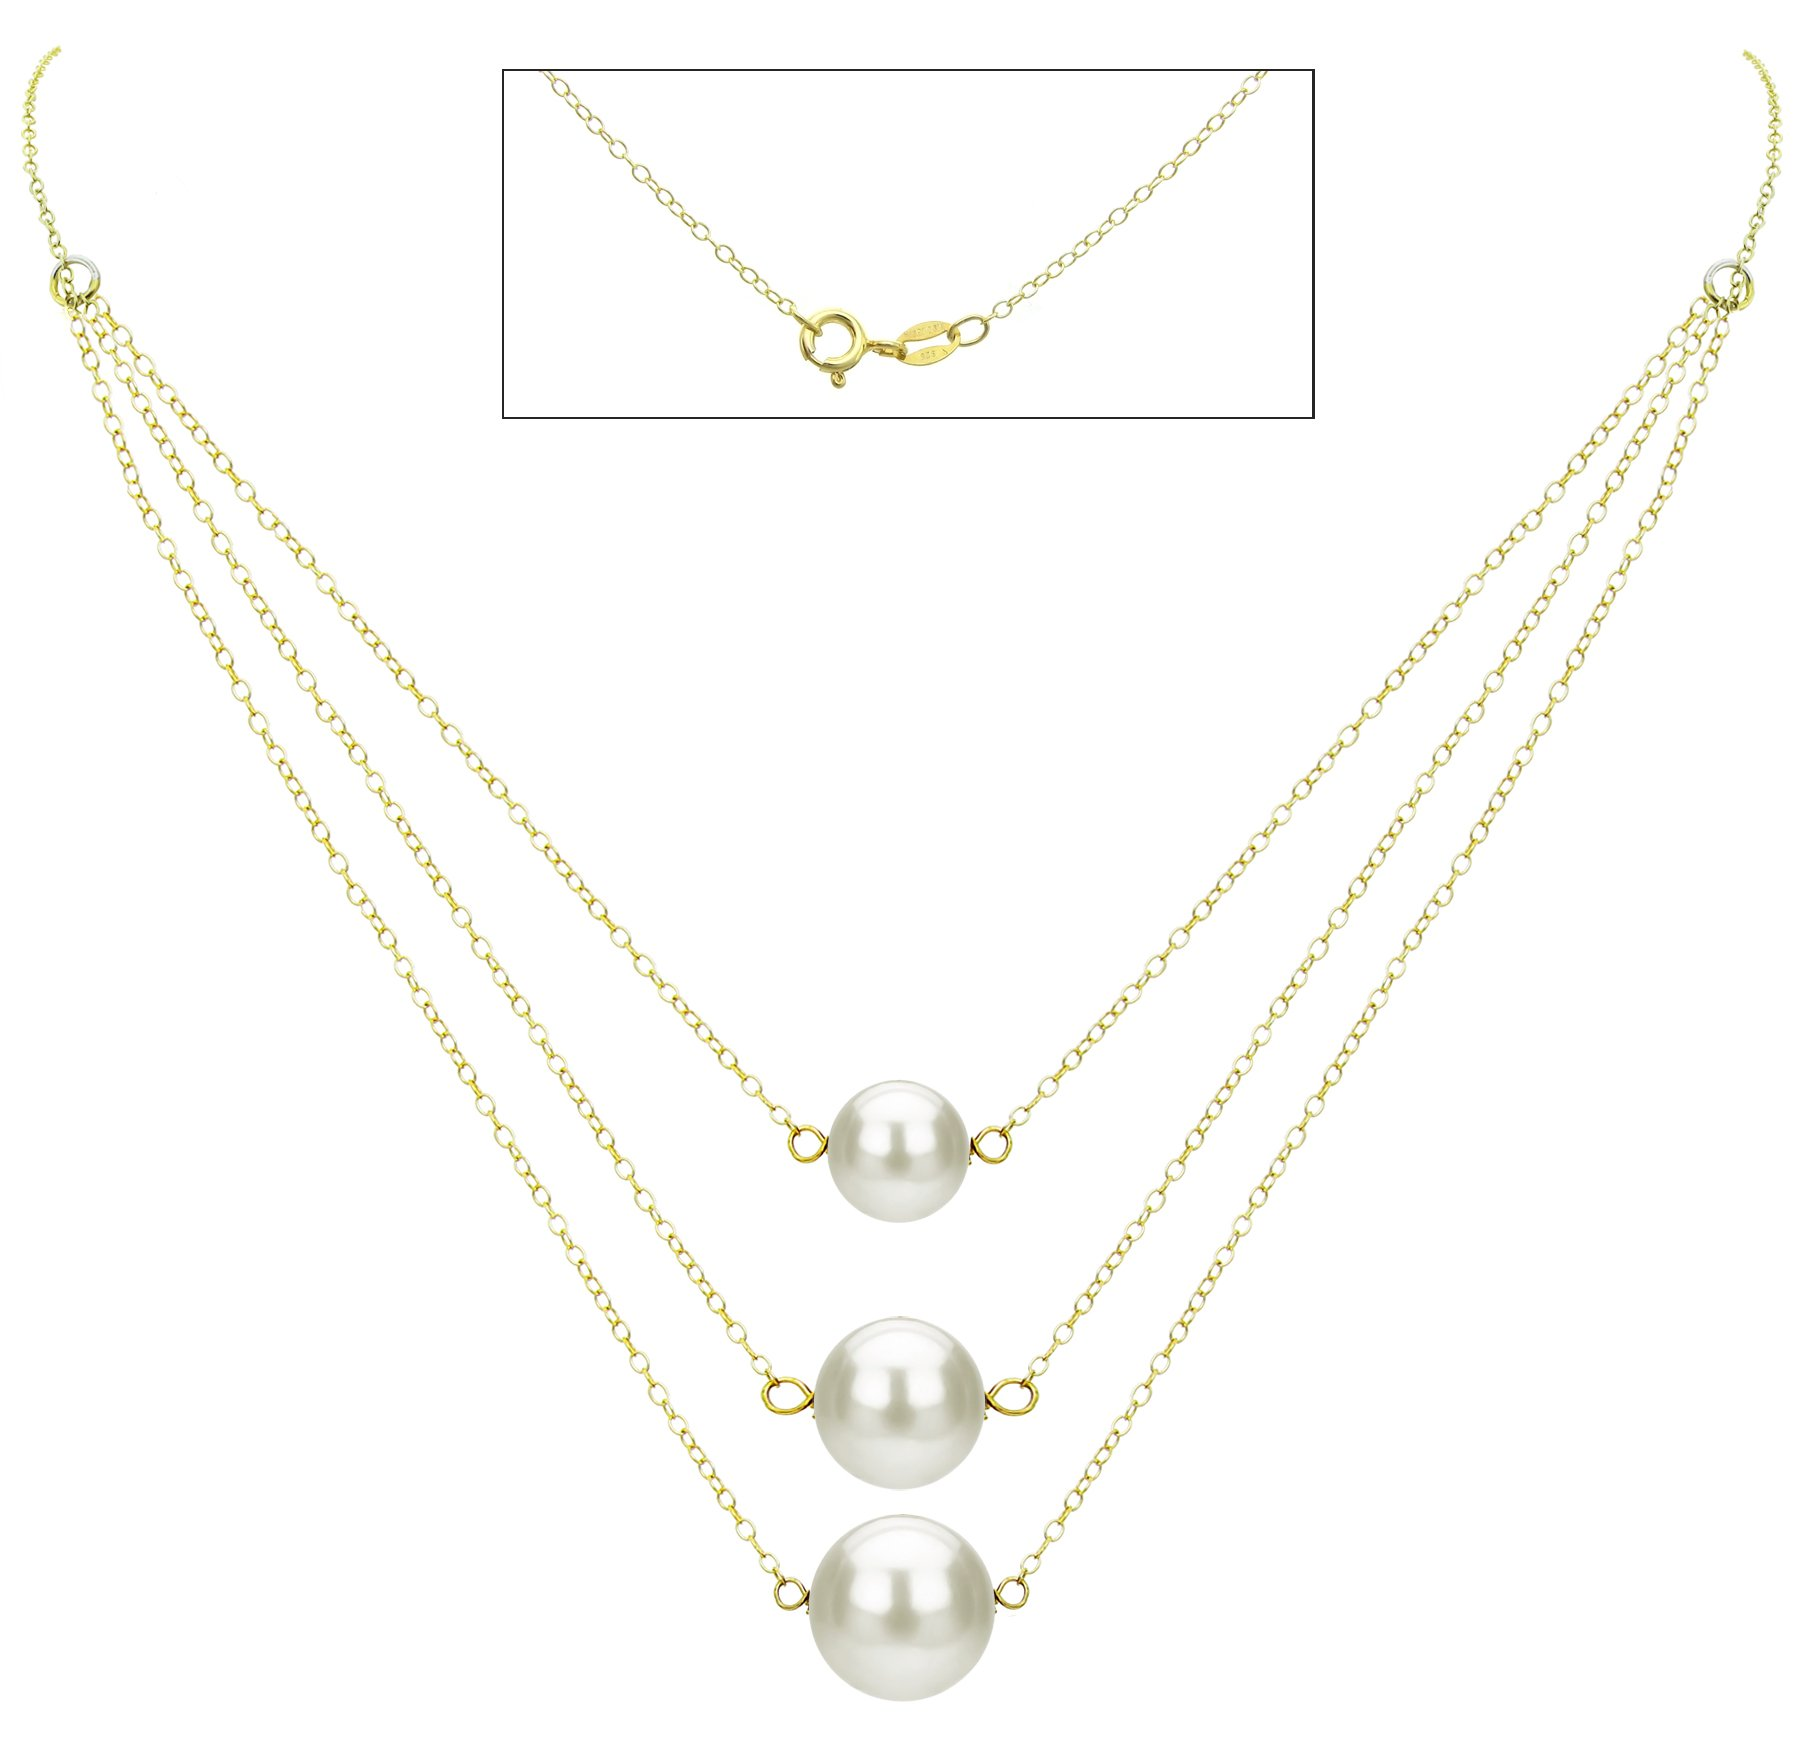 18k Yellow Gold Plated Silver Graduated 8.5-11.5mm White Freshwater Cultured Pearl Chain Necklace, 16.5''